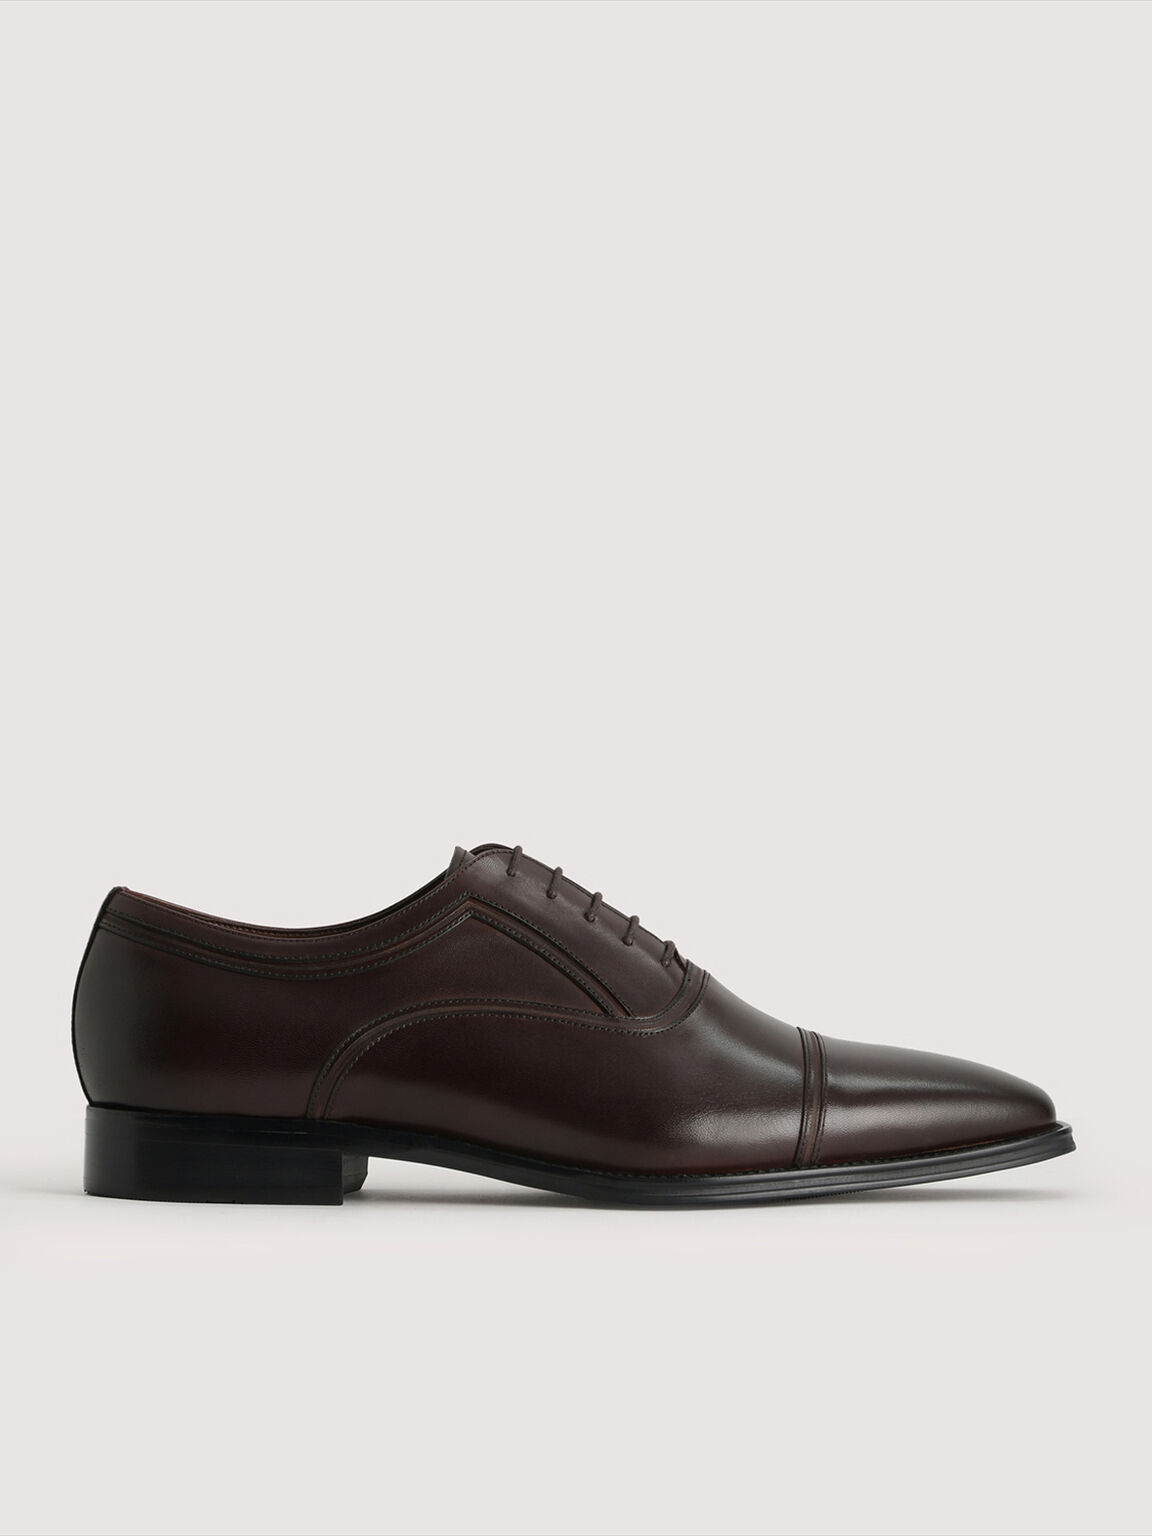 Leather Oxford Shoes, Dark Brown, hi-res